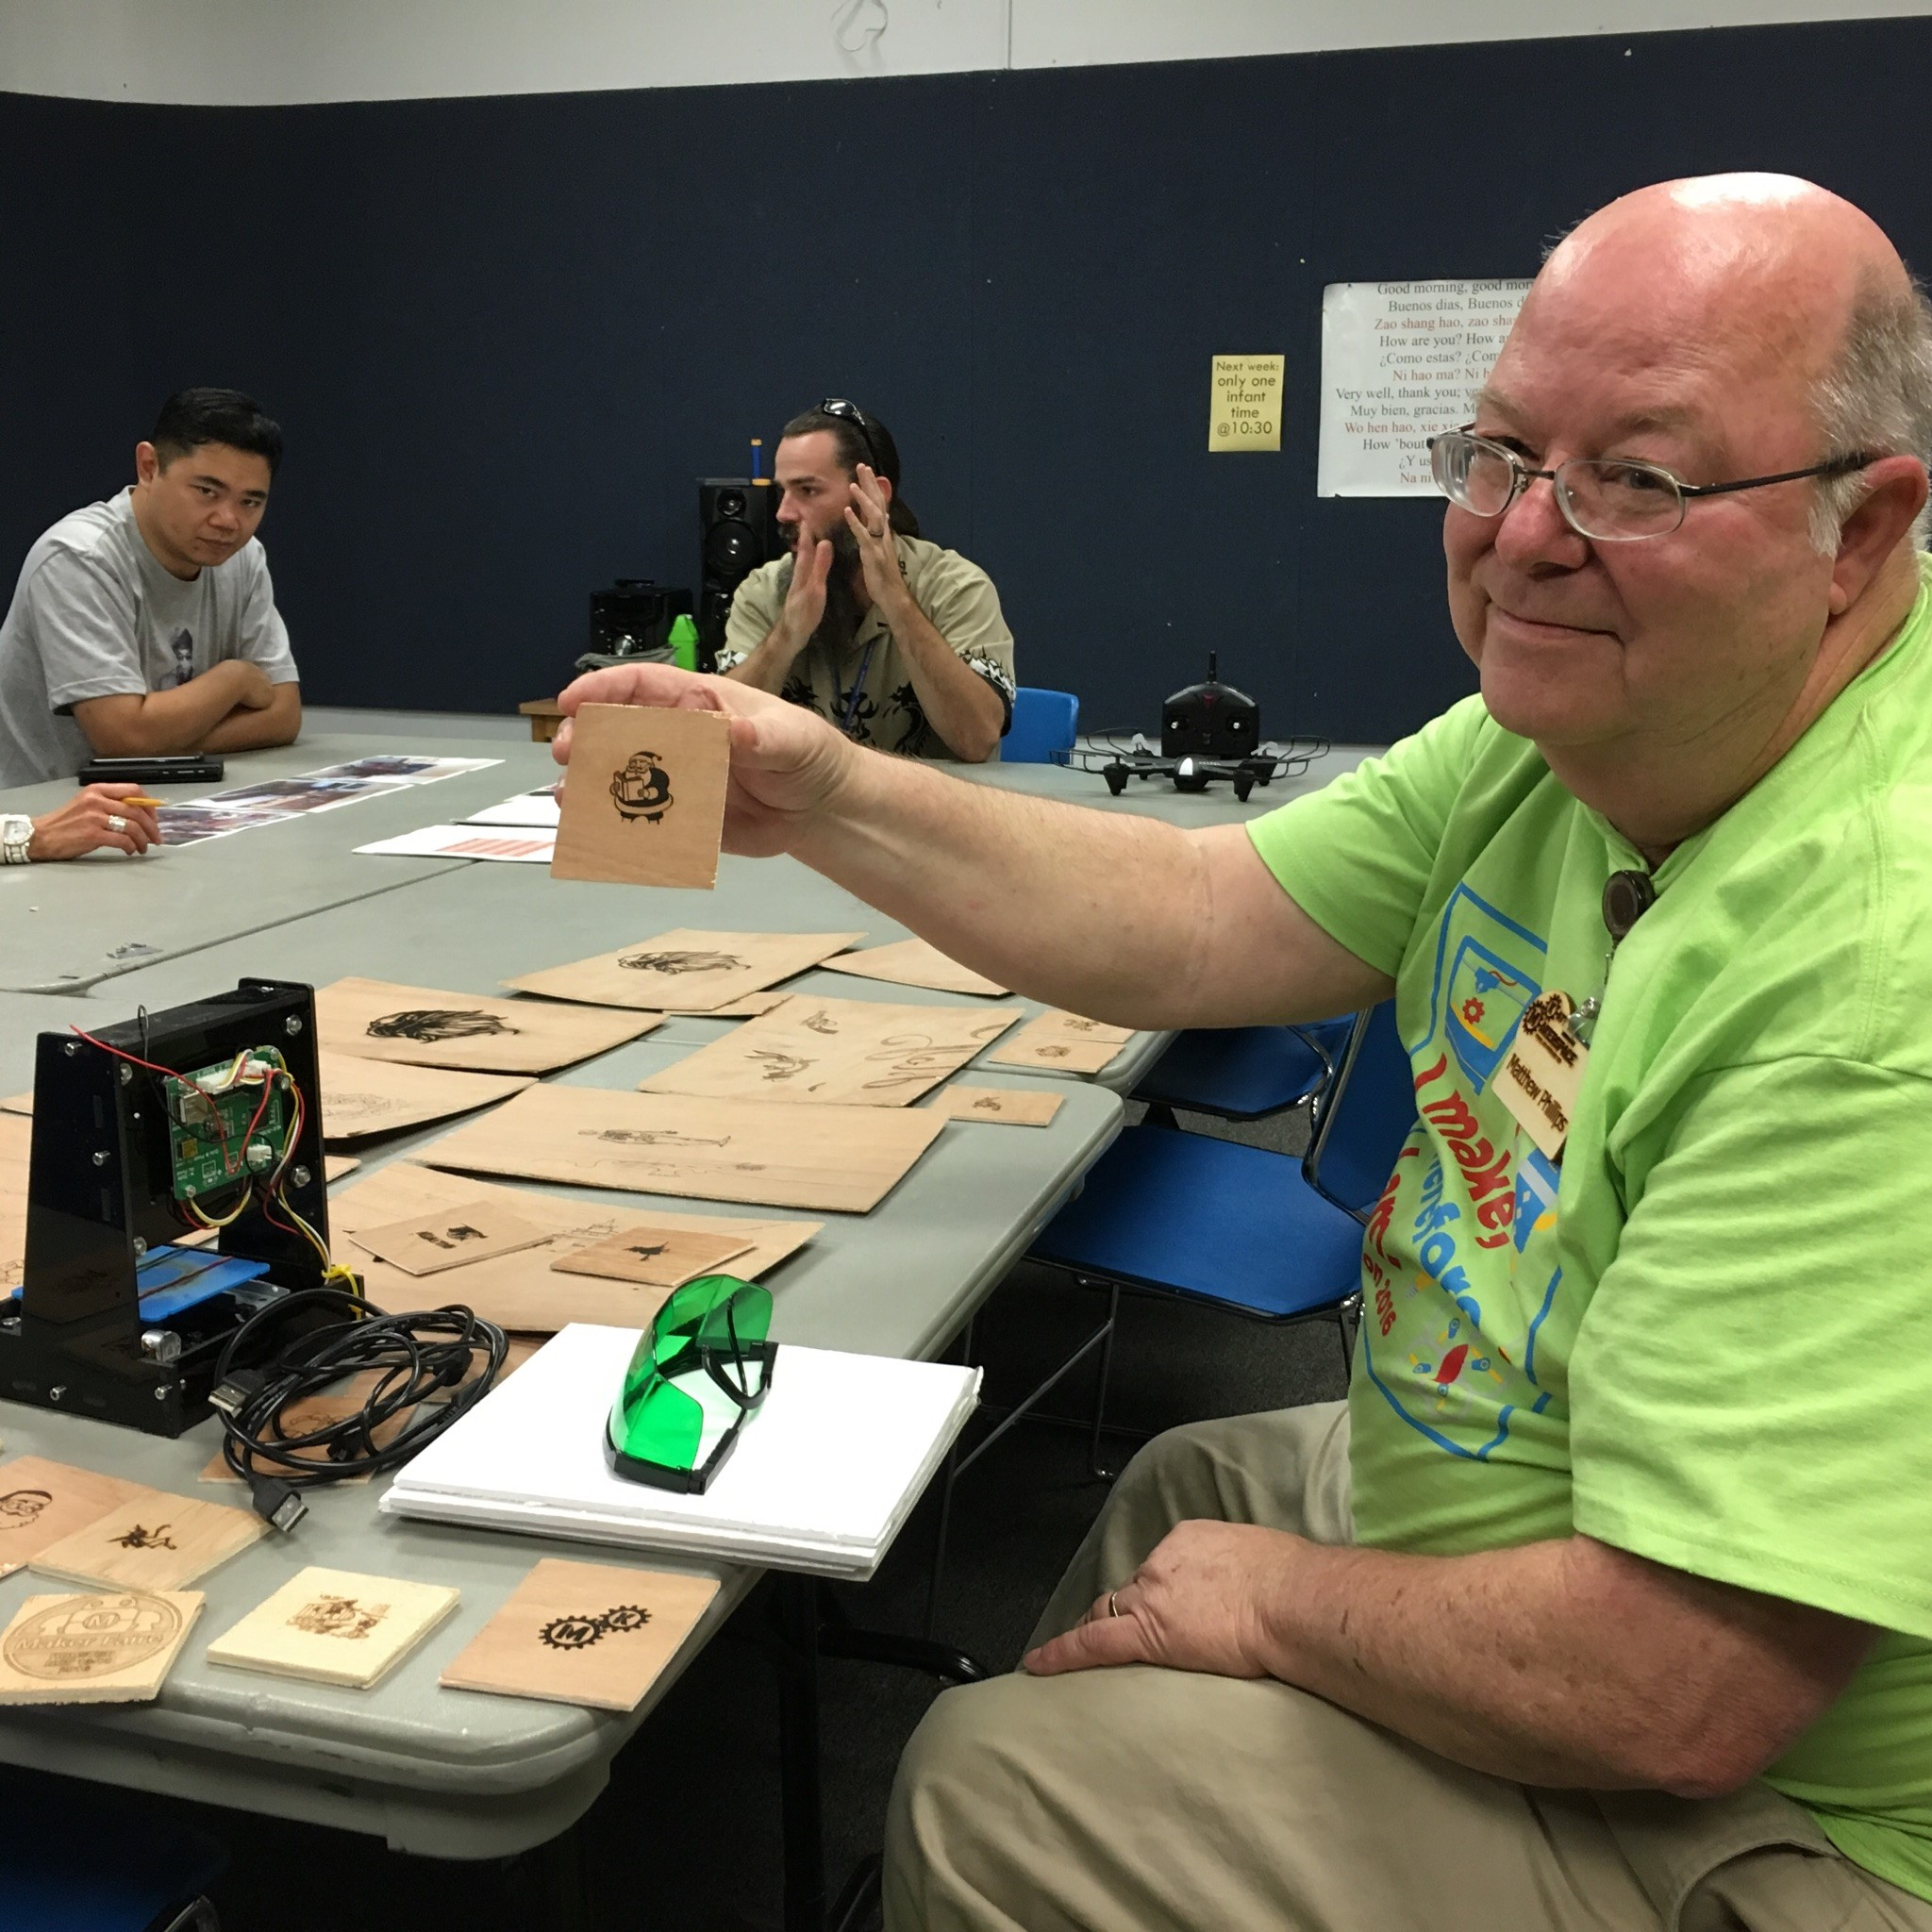 MakerSpace Encourages People To Create, Learn